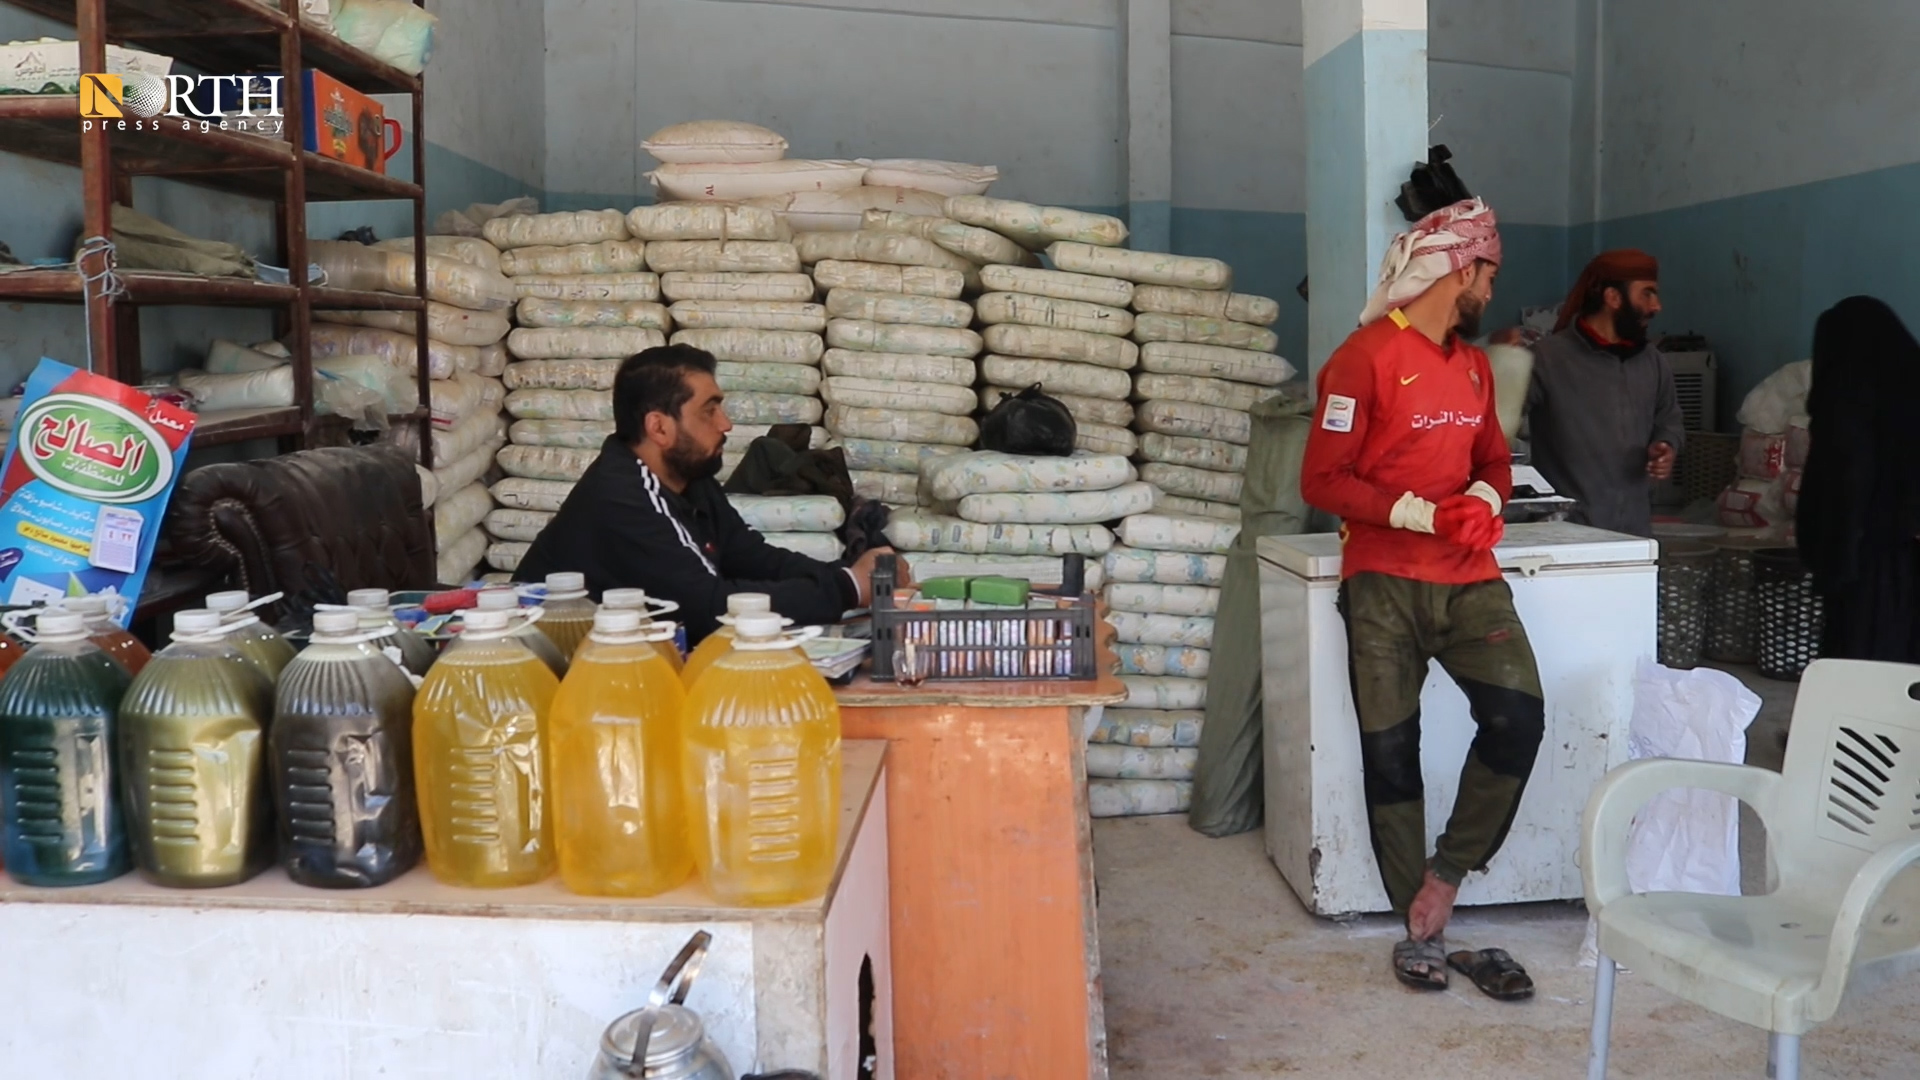 A detergents factory in the eastern countryside of Deir ez-Zor